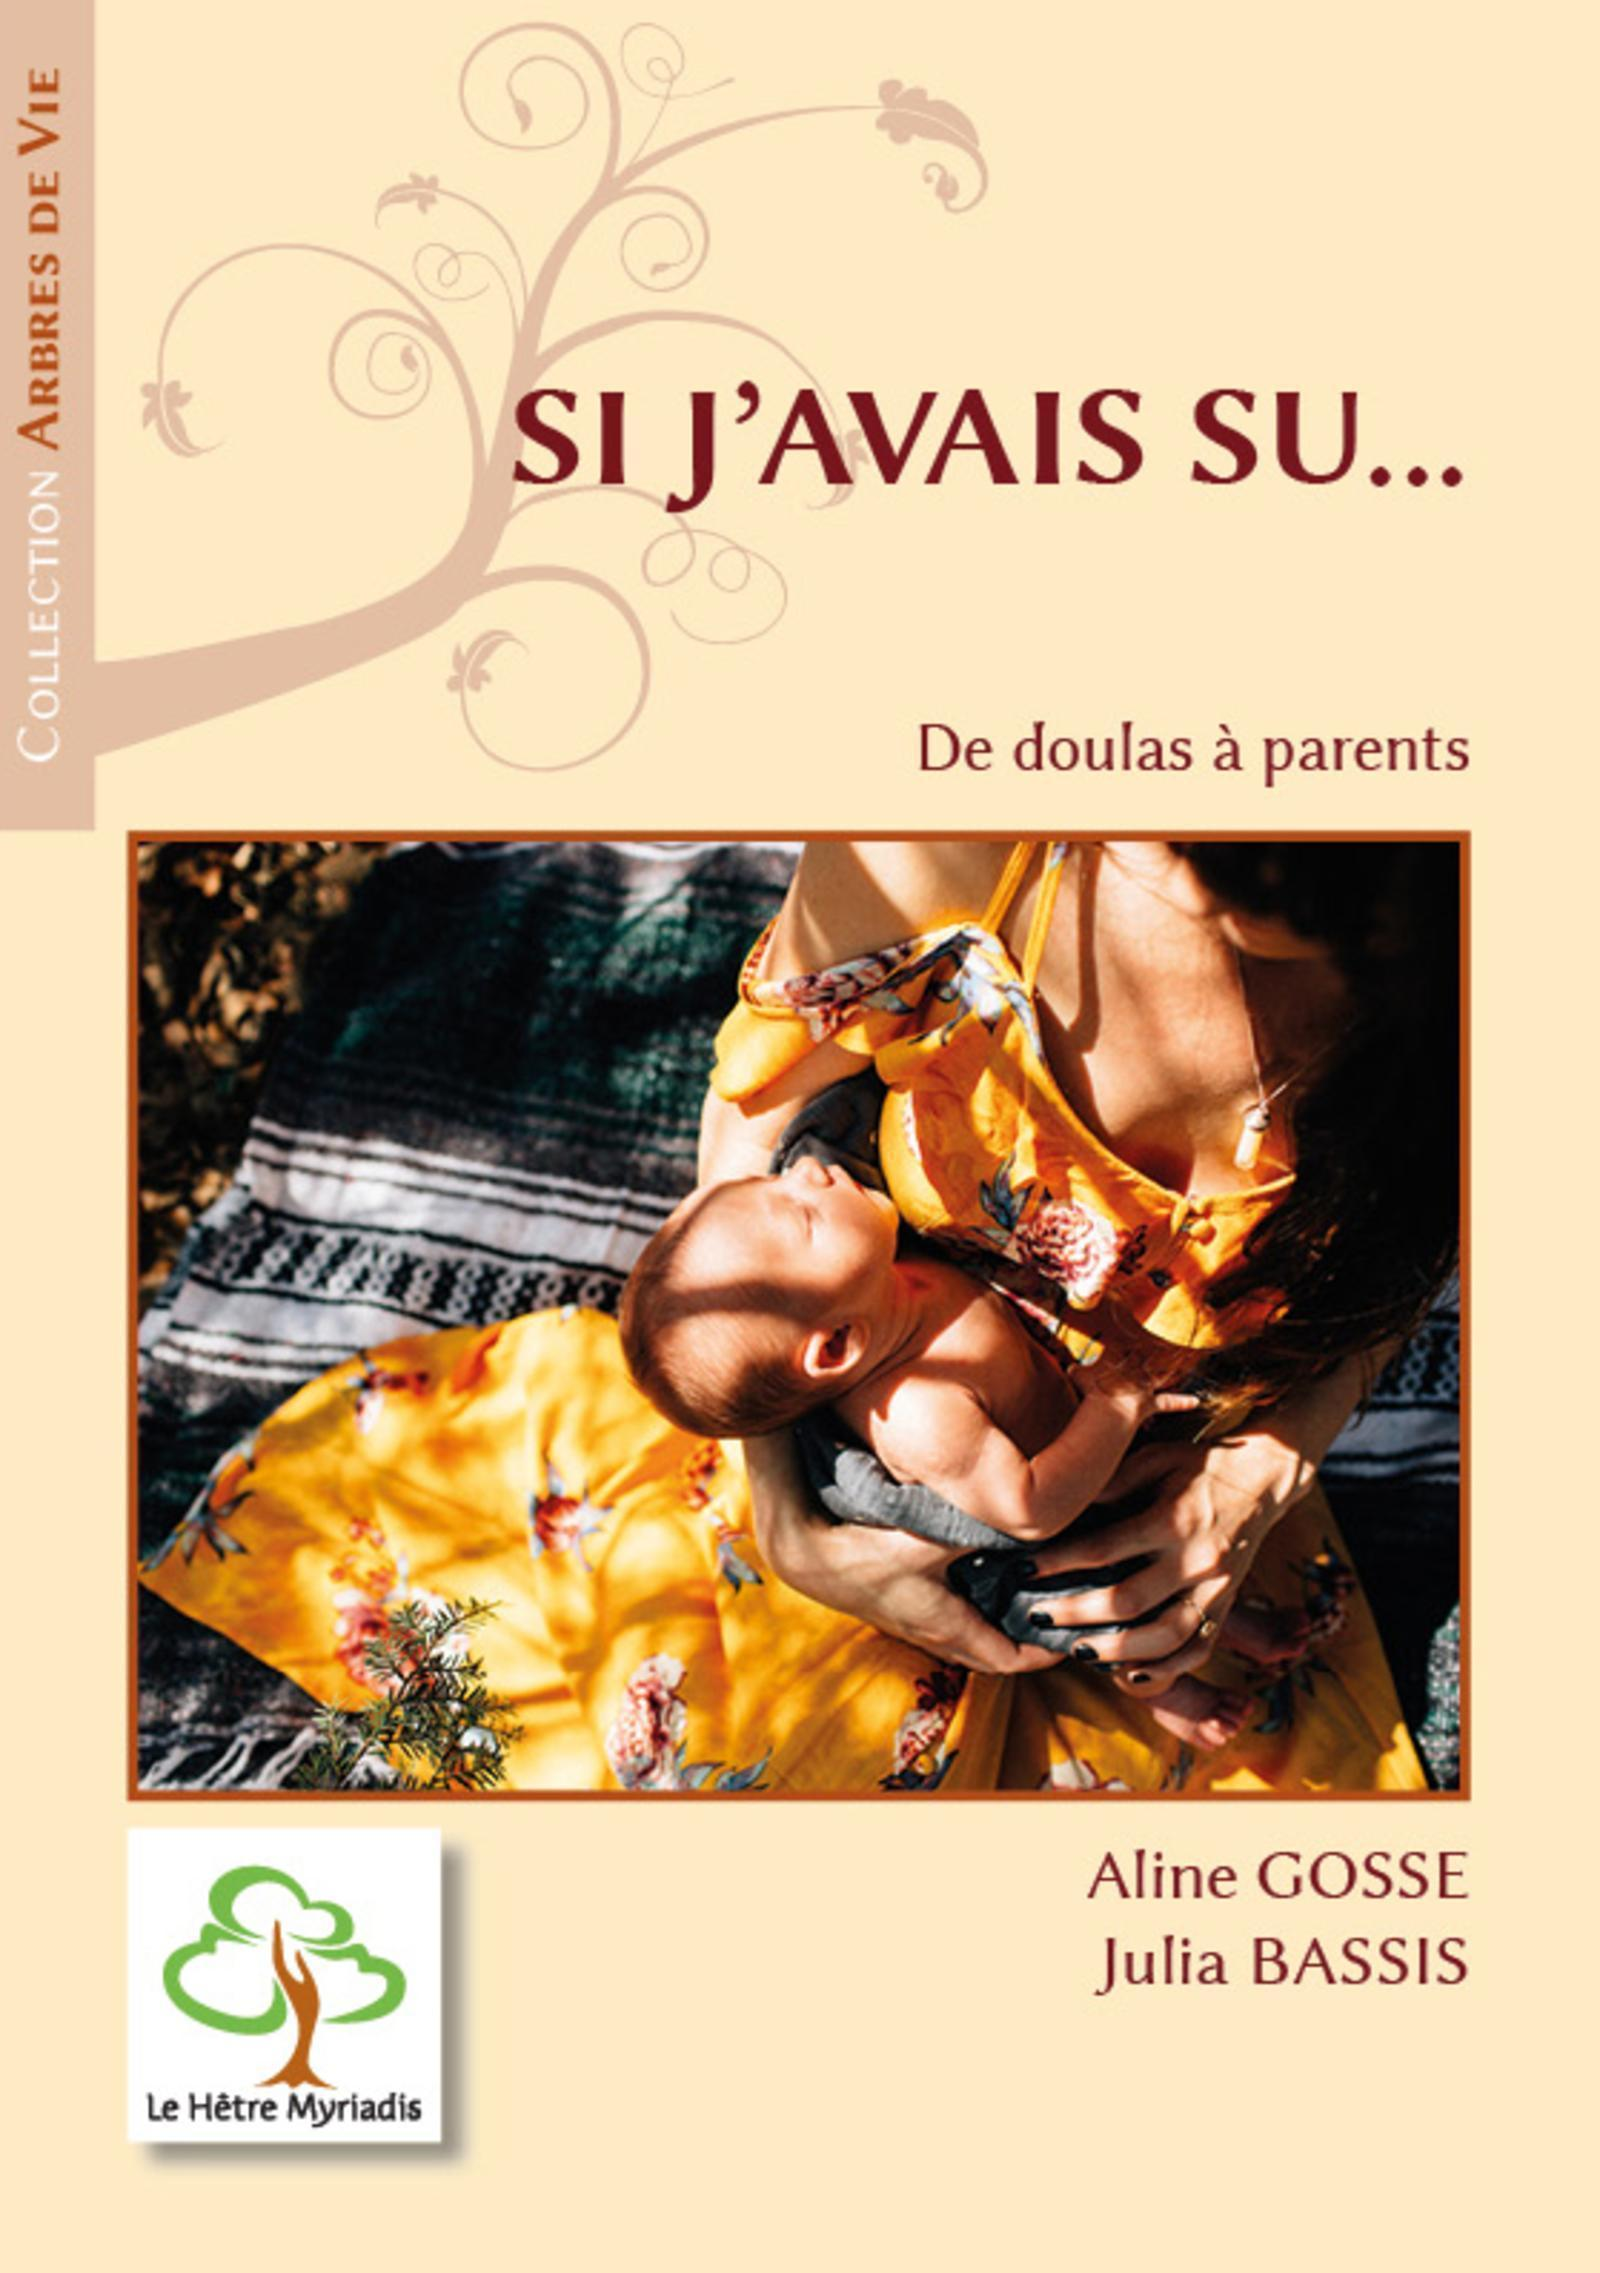 SI J'AVAIS SU... - DE DOULAS A PARENTS